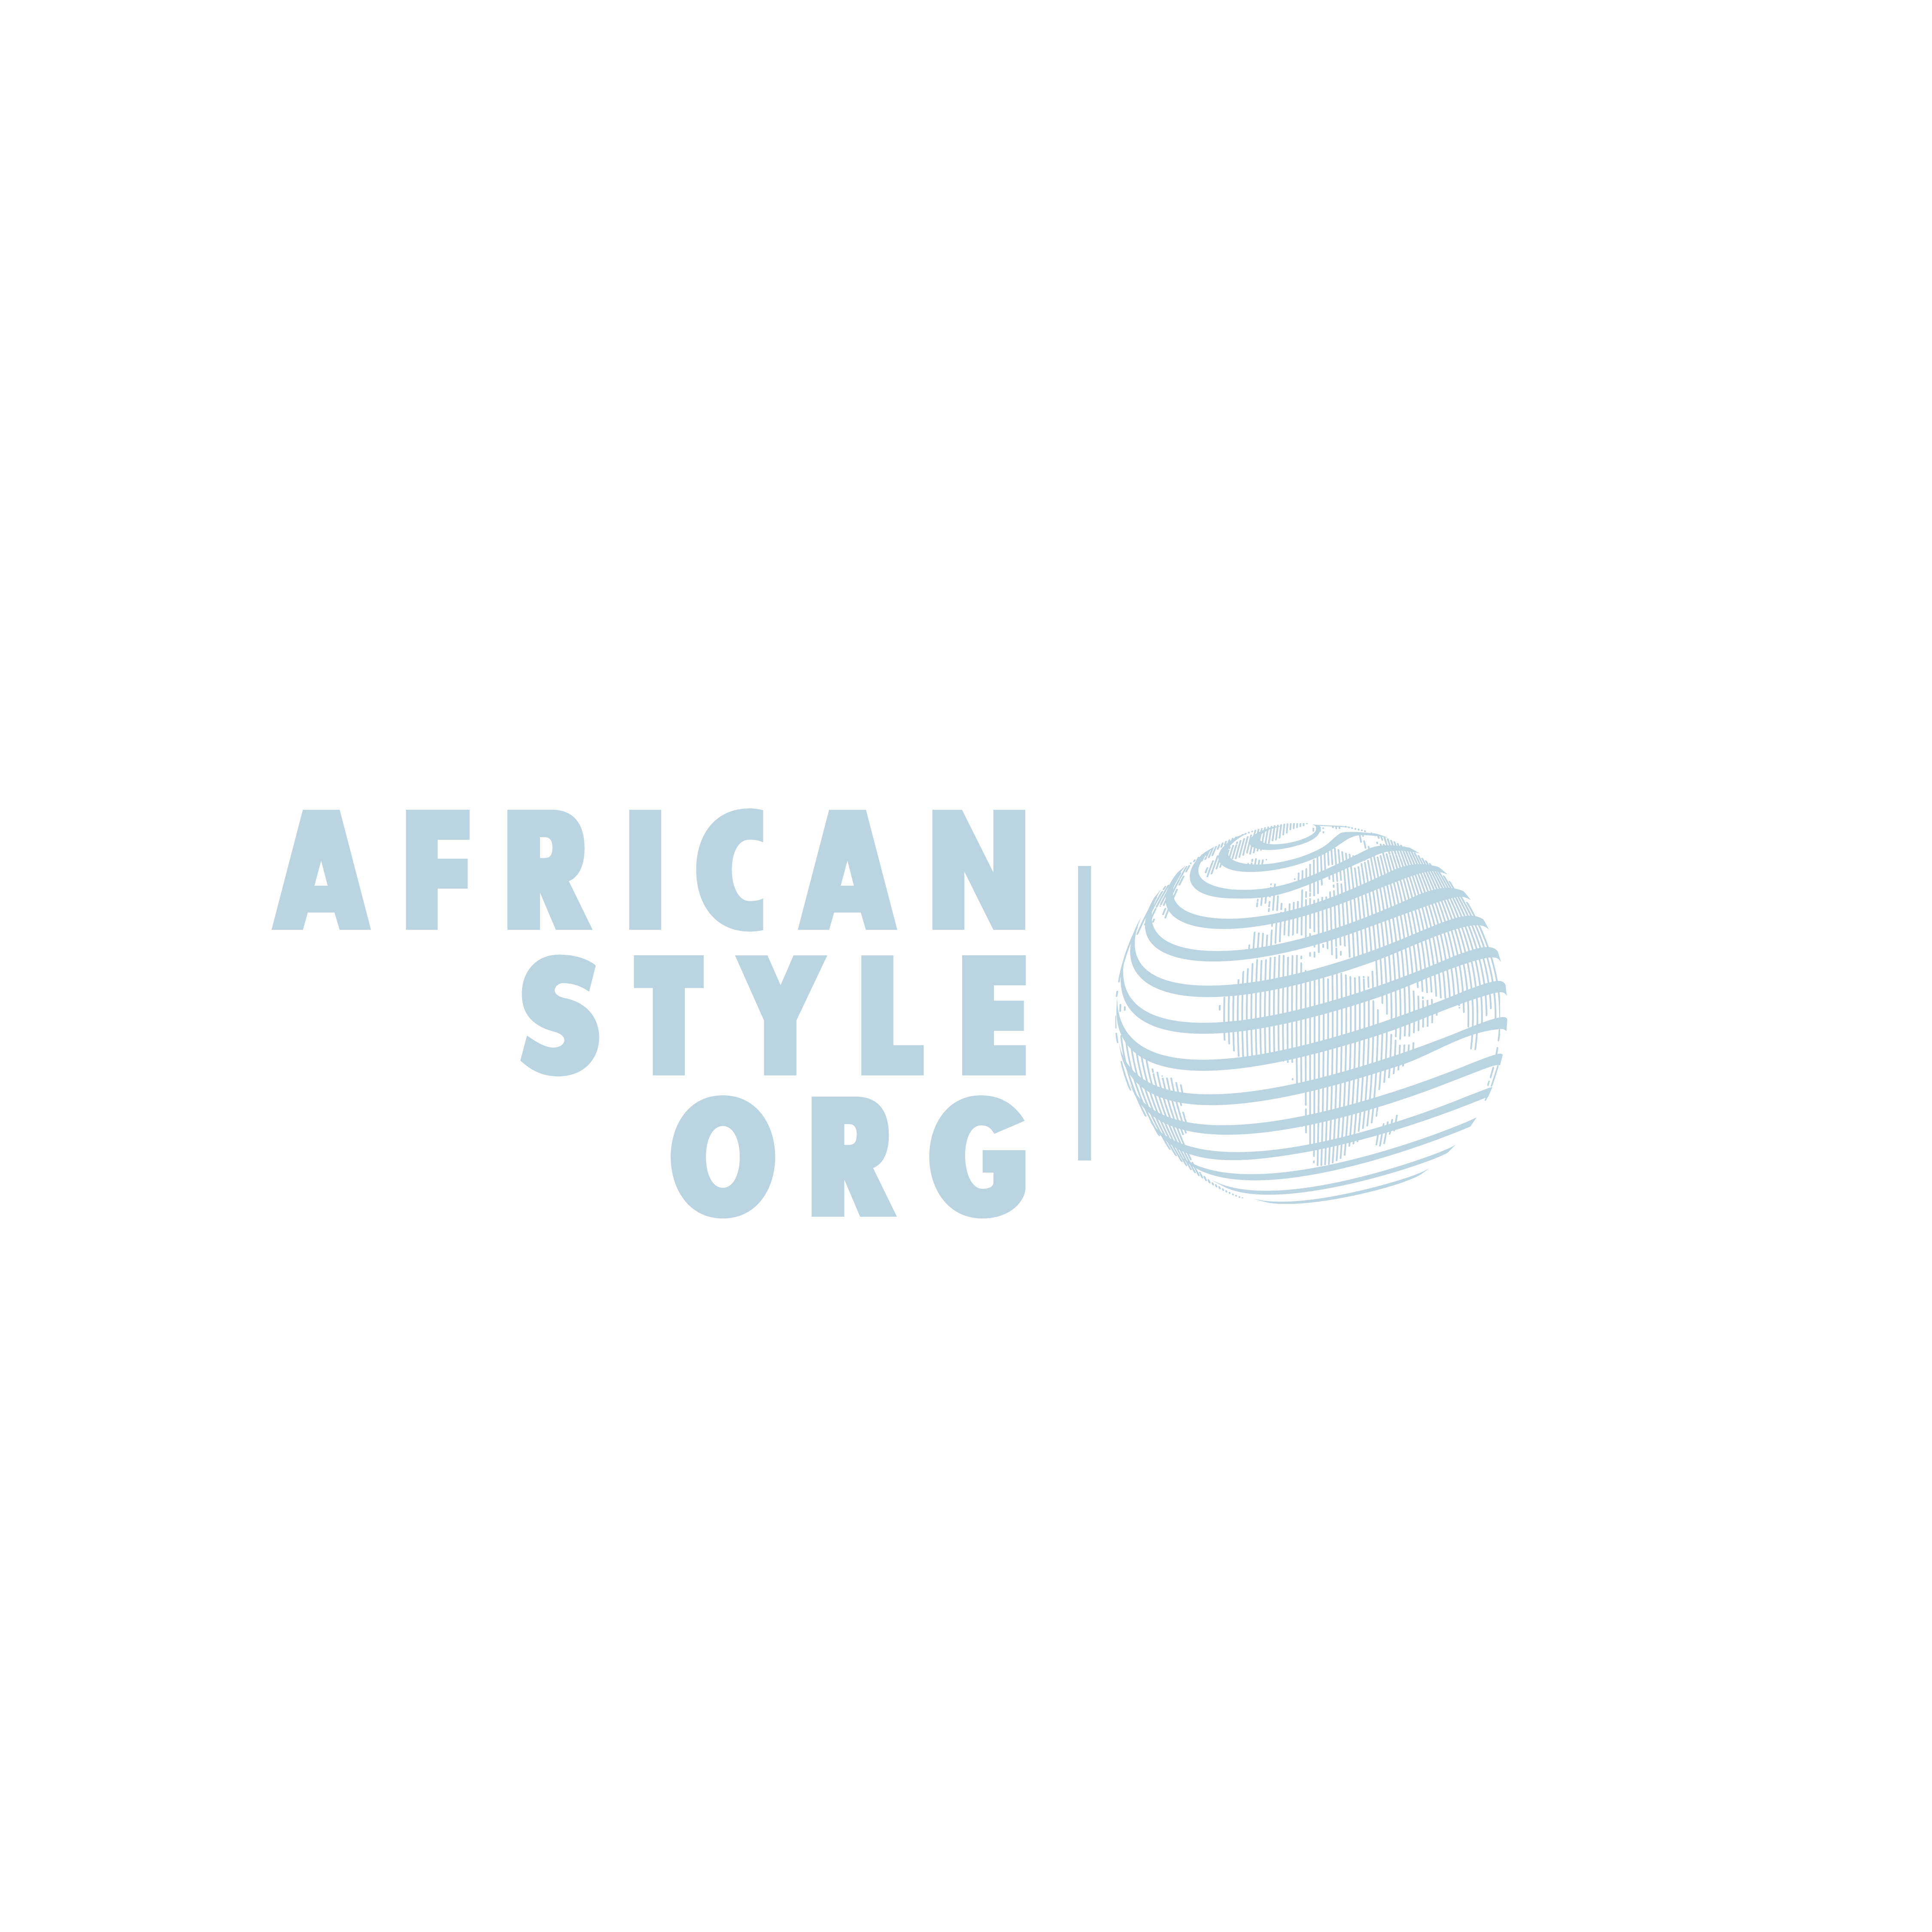 African Style Org